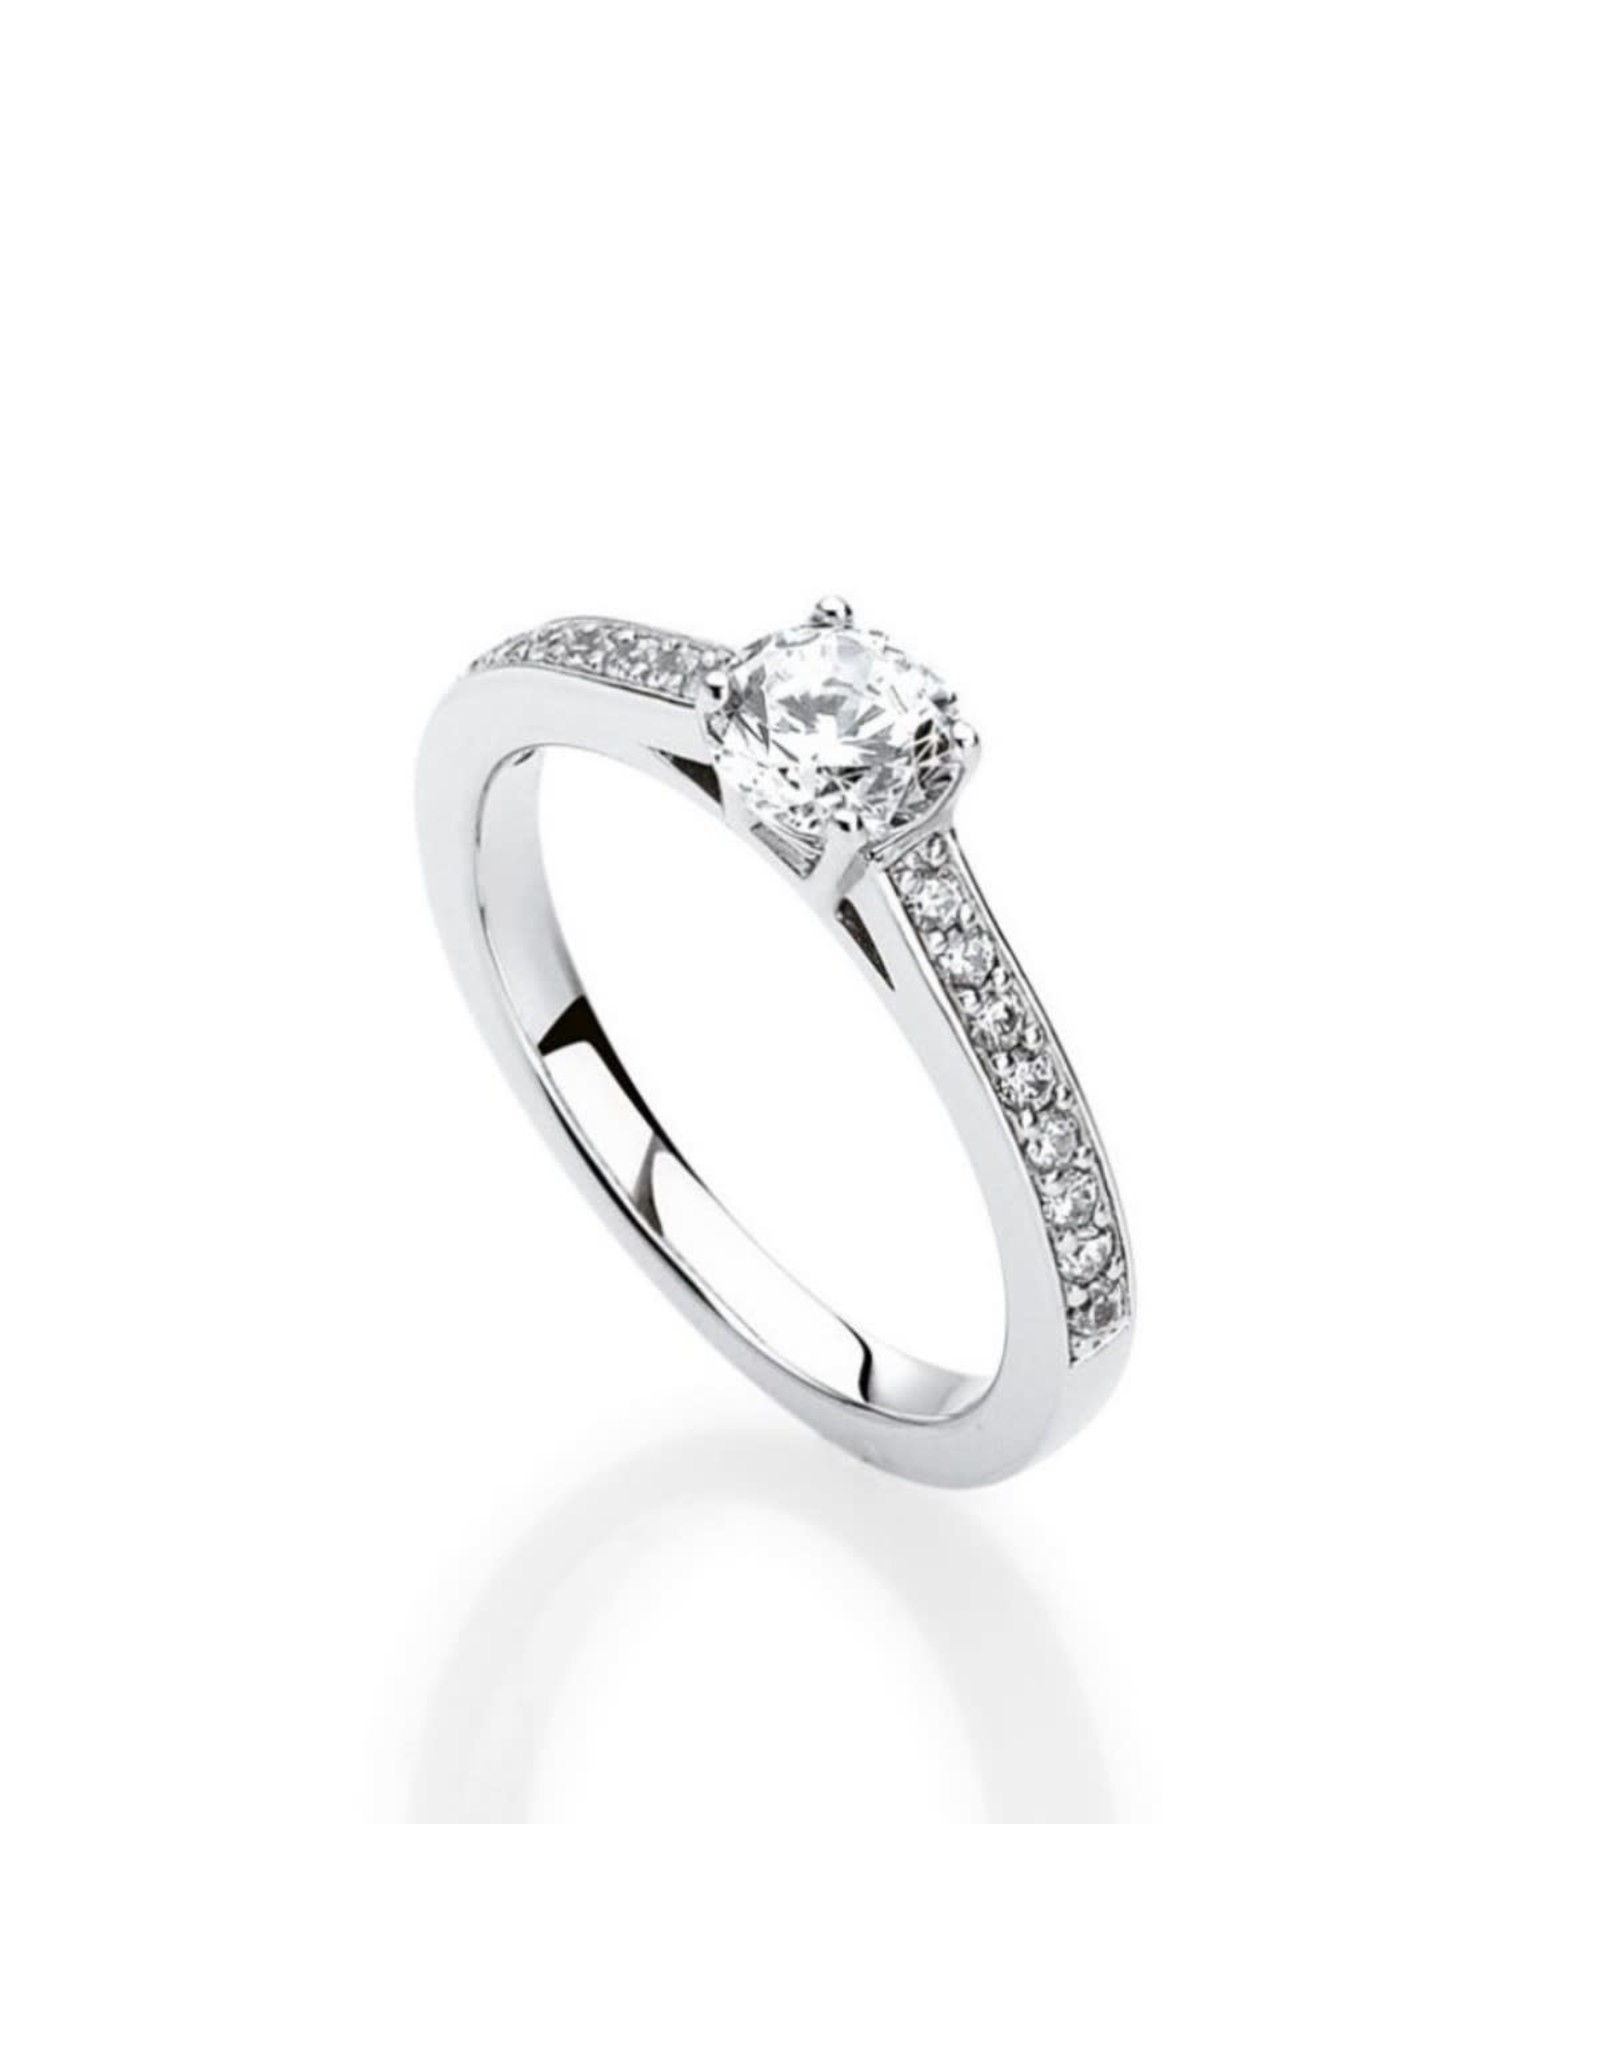 Ring Solitaire Naiomy Moments B2D14 Zilver